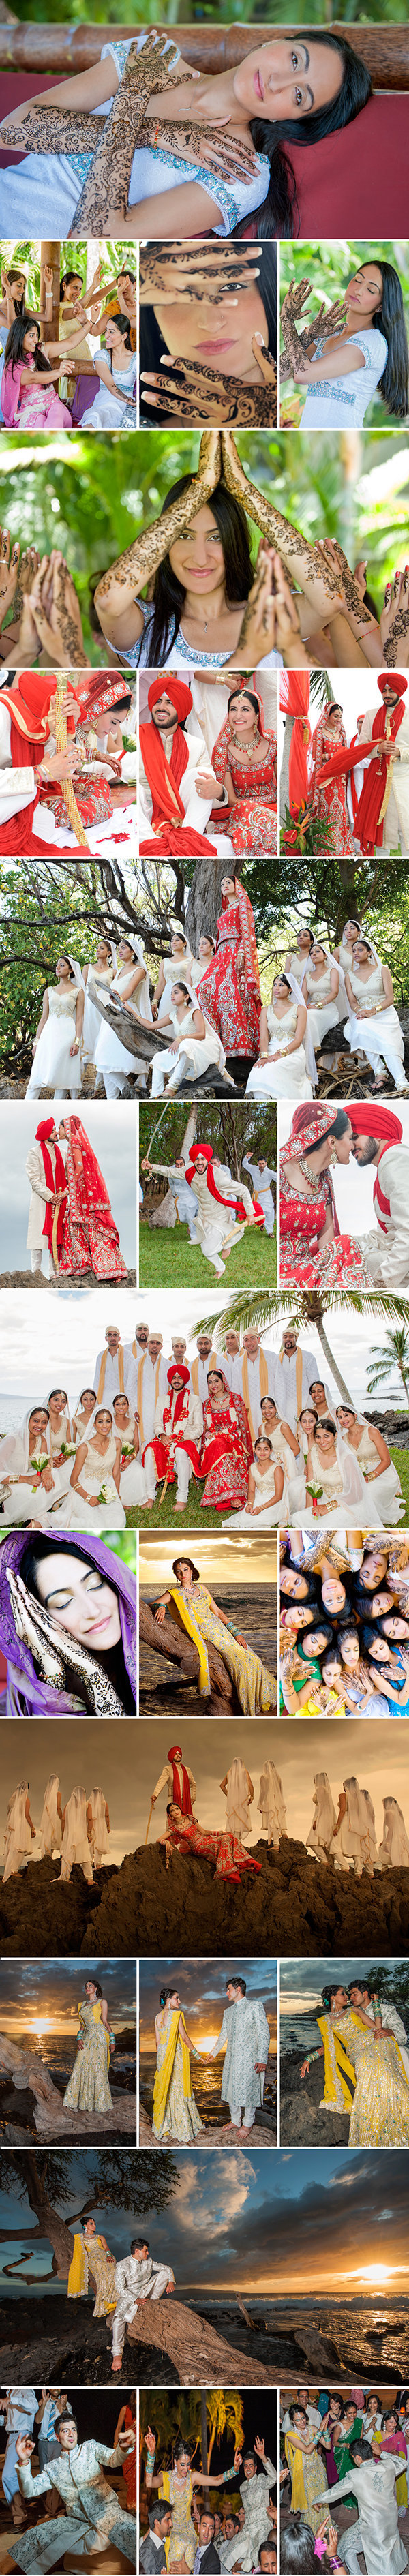 Hawaii Indian wedding photographers | Maui | Kauai | Oahu